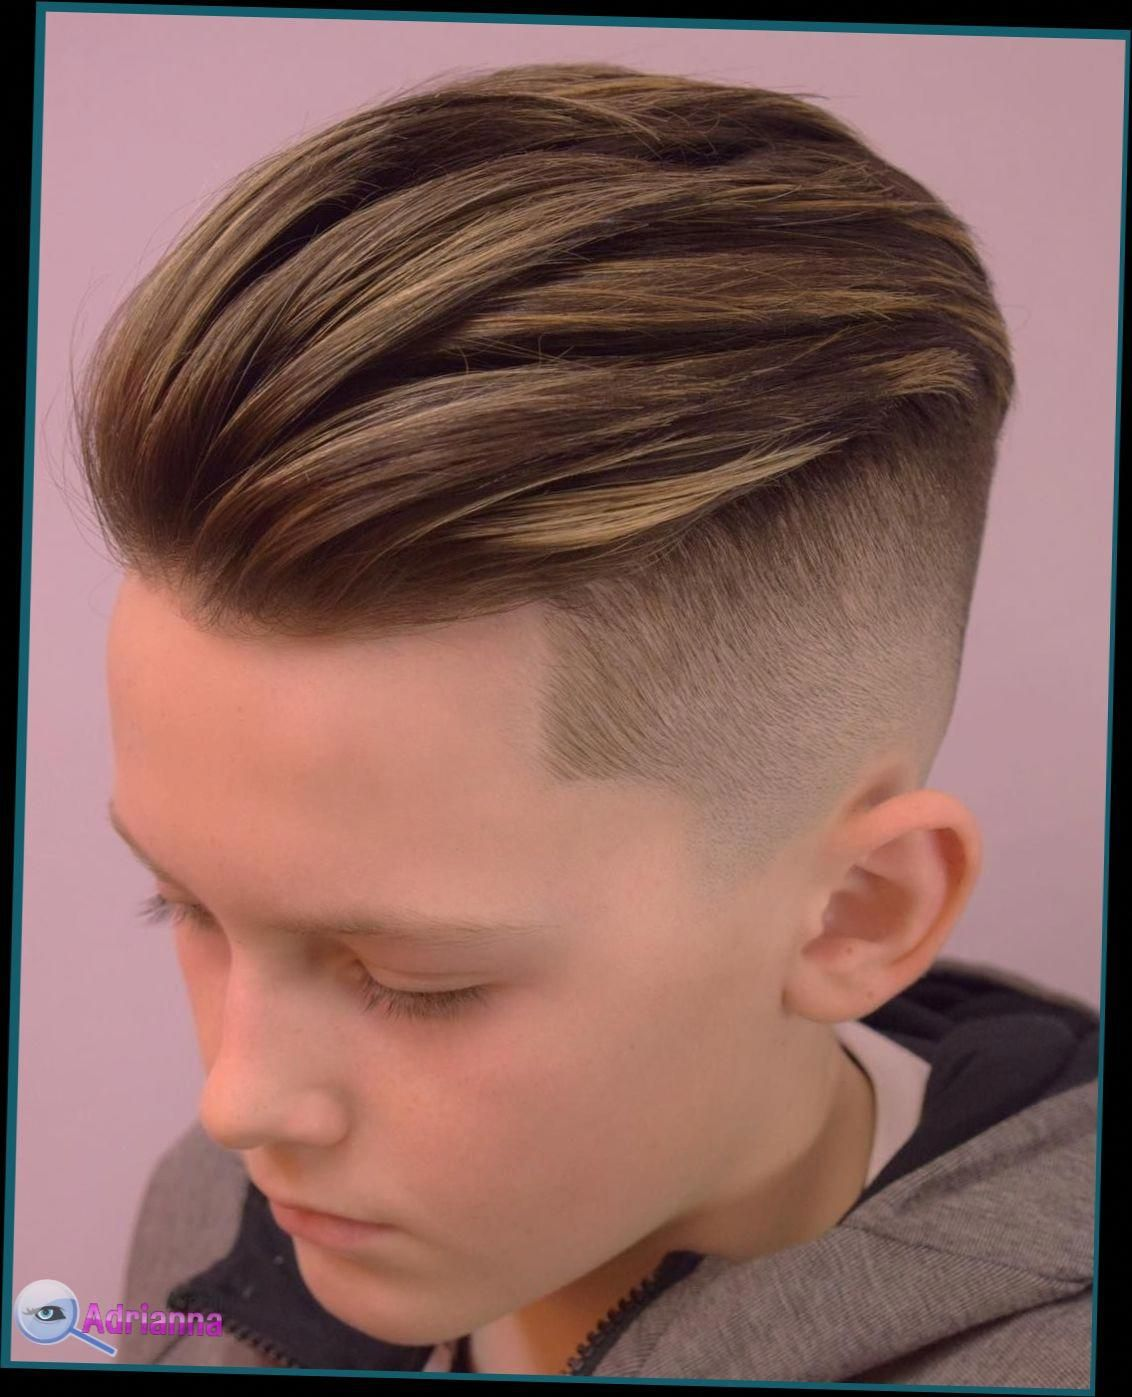 Pin on Easy Hair Styles